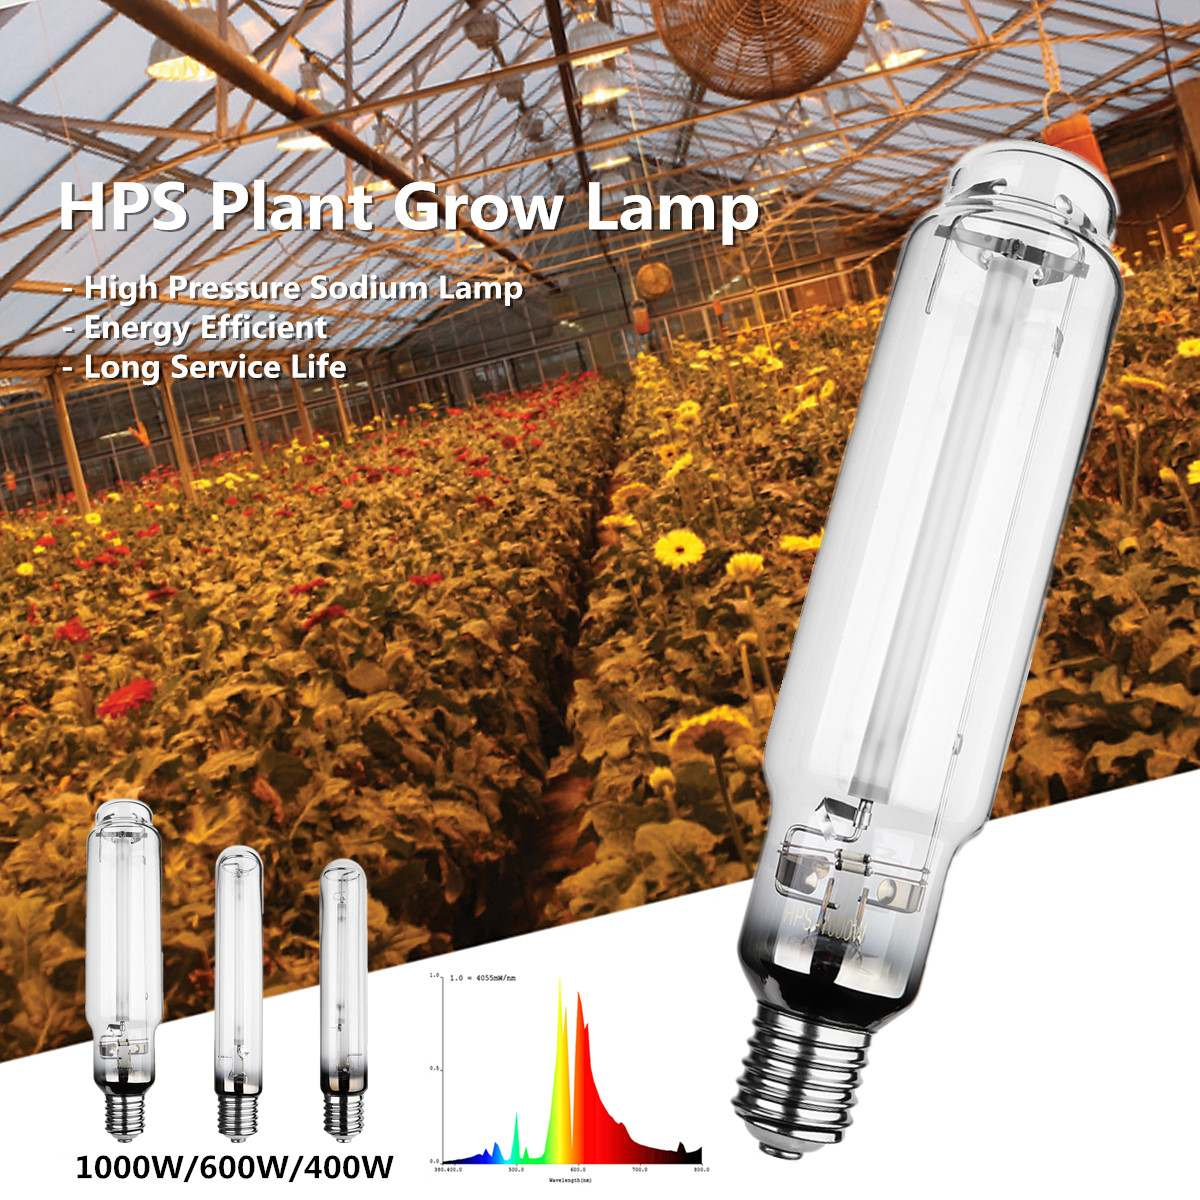 400W 600W 1000W HPS Plant Grow Lamp E40 23Ra High Pressure Sodium Lamp Energy Efficient Long Service Life 23000 Hours